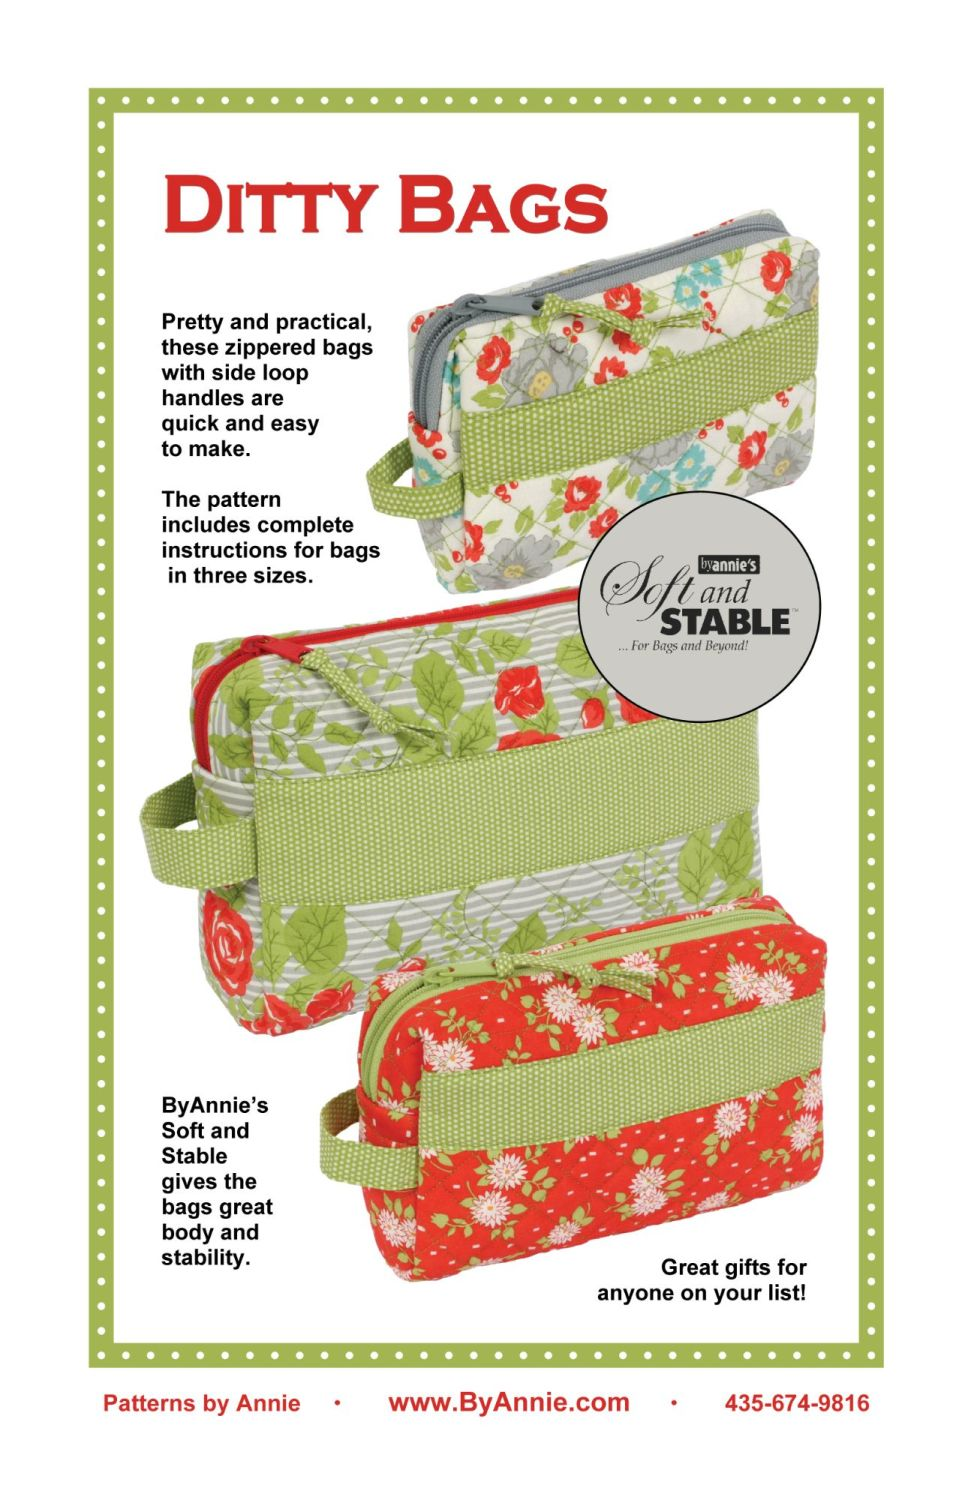 By Annie Ditty Bags Pouch Pattern